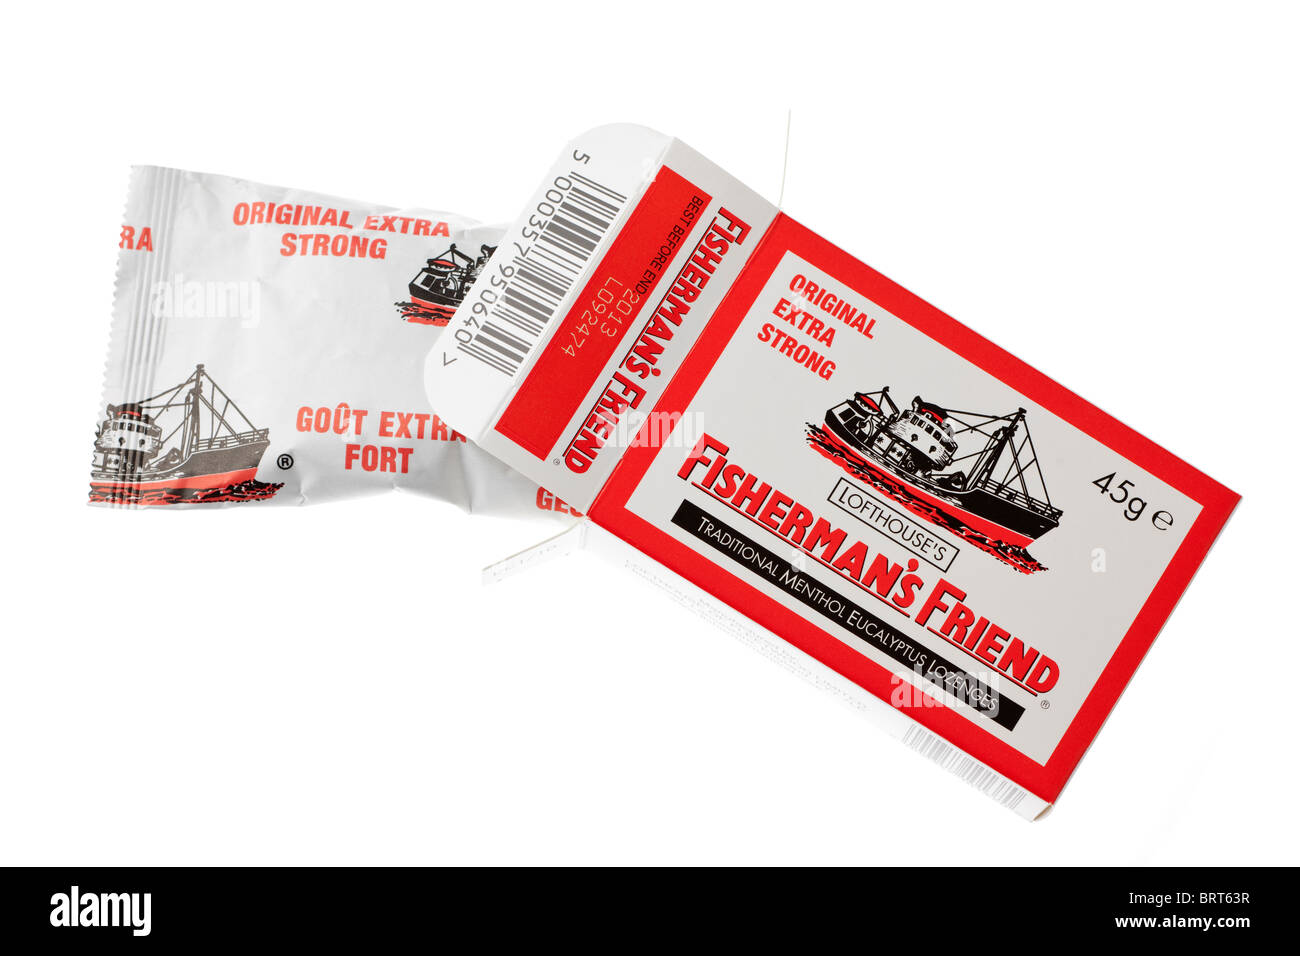 45G Box and packet of Fishermans friends original extra strong traditional menthol eucalyptus lozenges - Stock Image